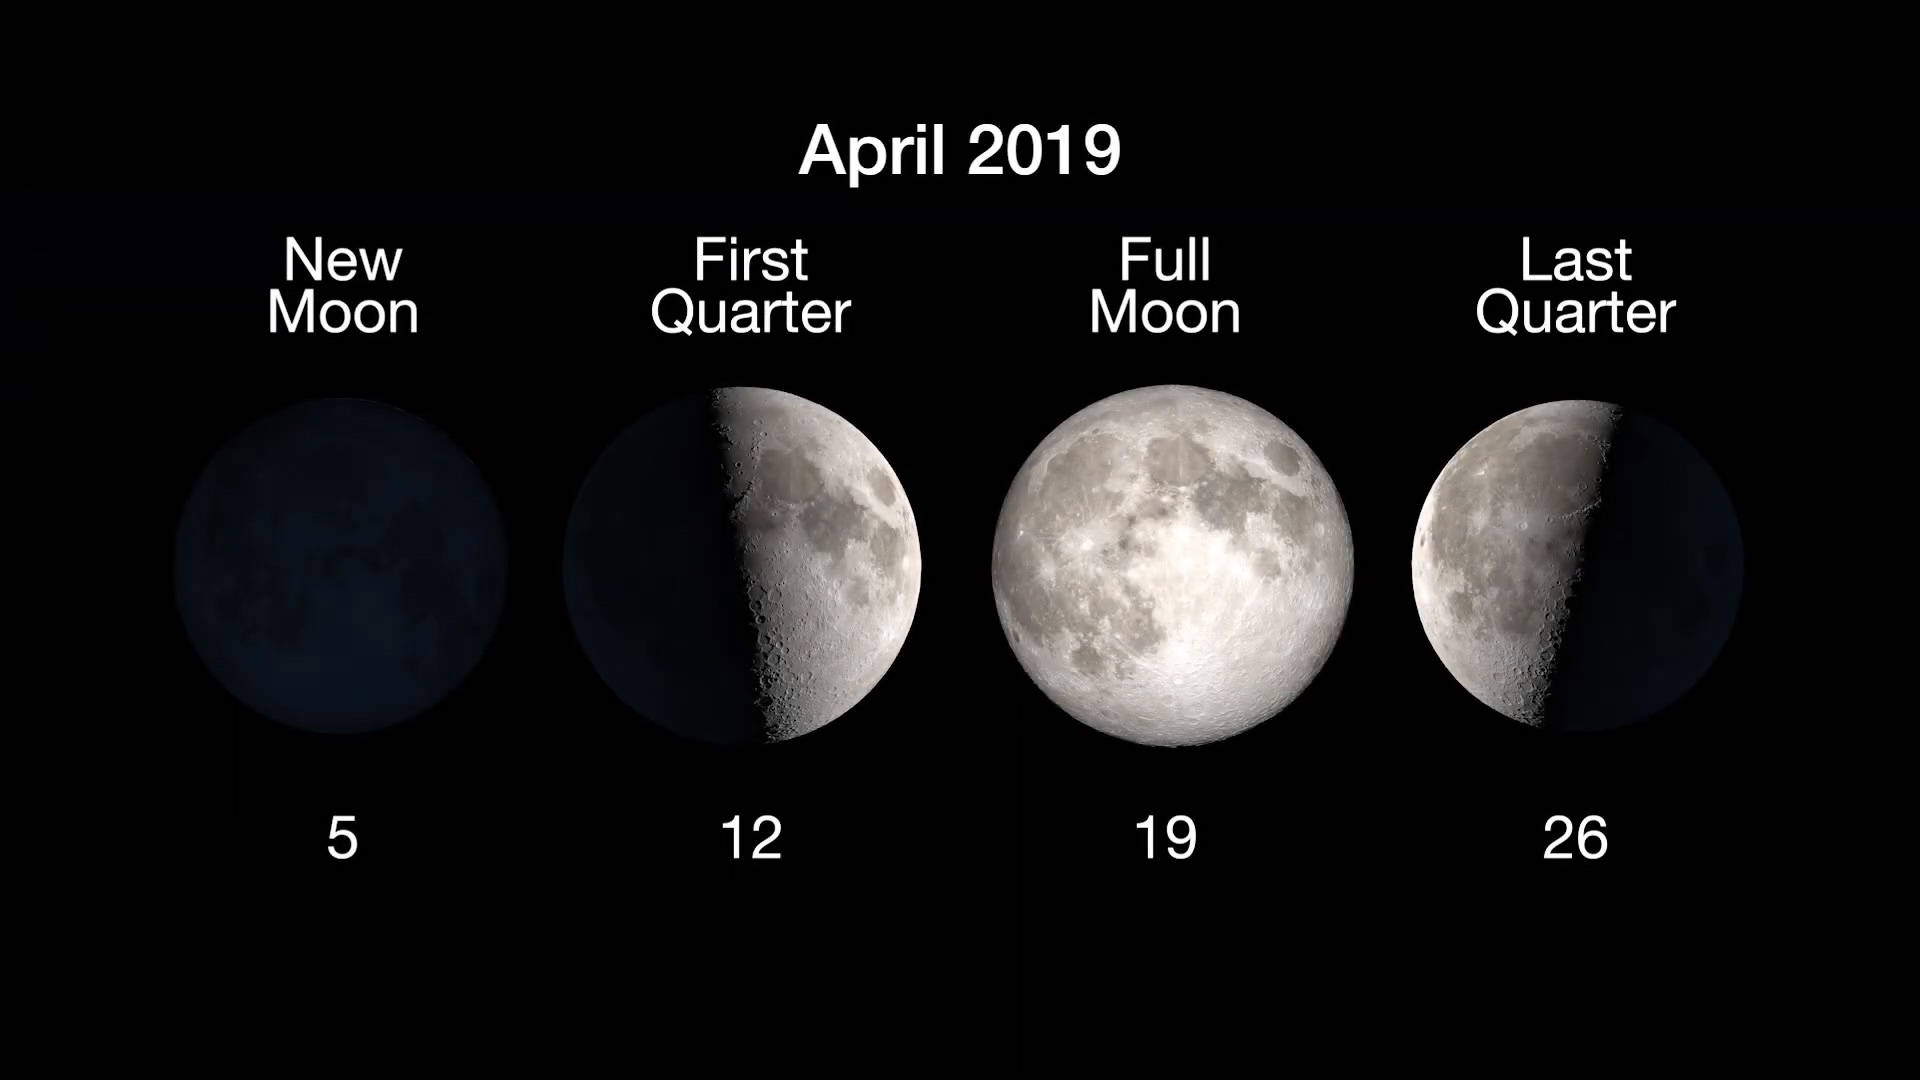 Moon Phases: New Moon, April 5, first quarter April 12, Full Moon April 19, last quarter, April 26.